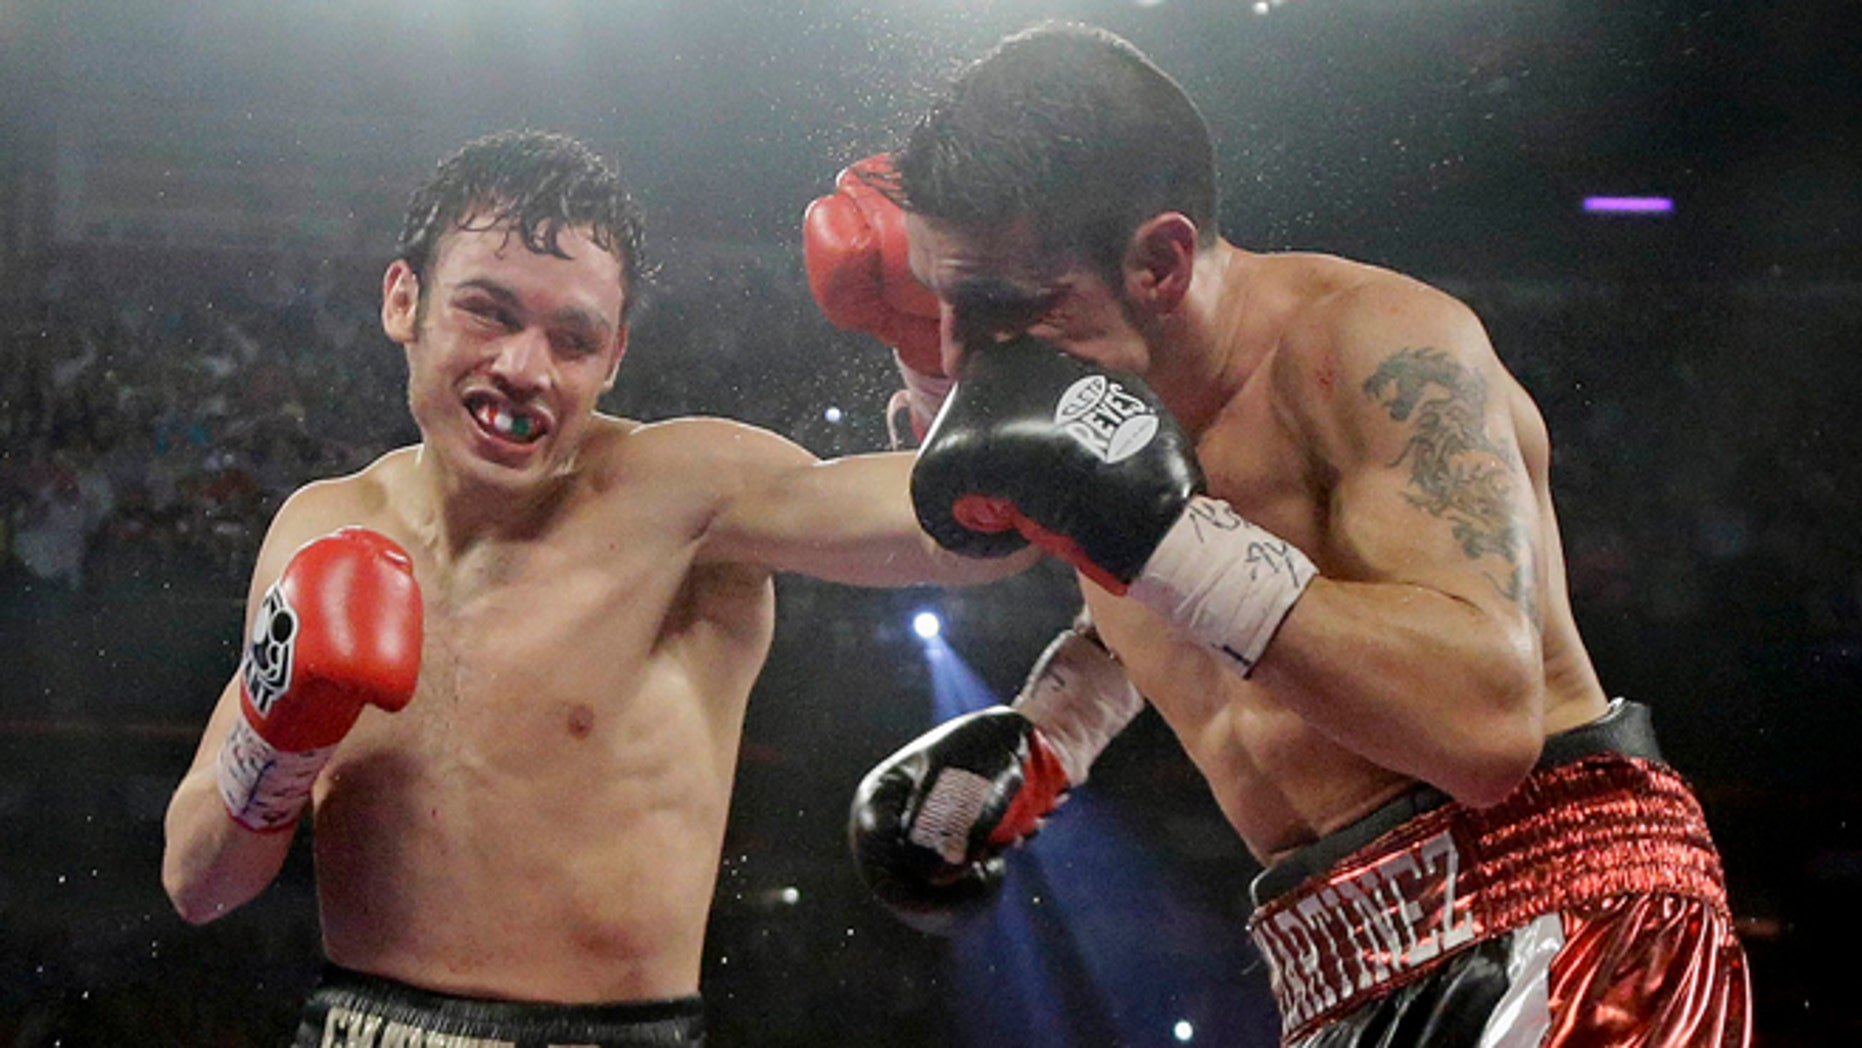 FILE - In this Sept. 15, 2012, file photo, Julio Cesar Chavez Jr., left, lands a punch against Sergio Martinez during the 12th round of their WBC middleweight title fight in Las Vegas. Chavez was suspended for nine months and fined $900,000 by the Nevada State Athletic Commission on Thursday, Feb. 28, 2013, over a failed drug test last year. The 26-year-old Mexican fighter tested positive for marijuana in September after his loss to Martinez. (AP Photo/Julie Jacobson, File)